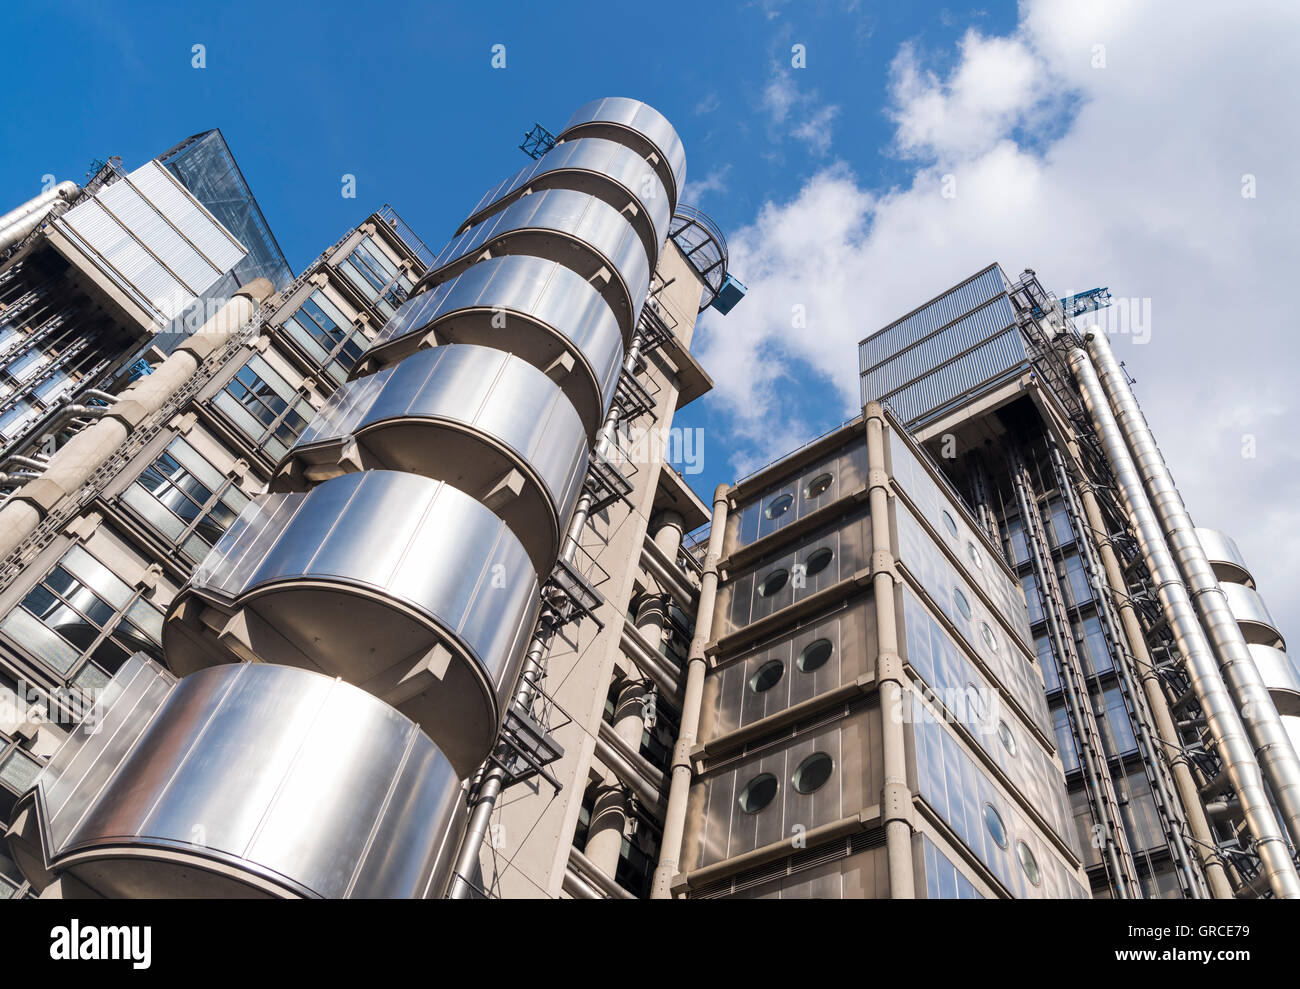 Lloyd's Of London, Versicherung, moderne Architektur im Zentrum von London, England Stockbild